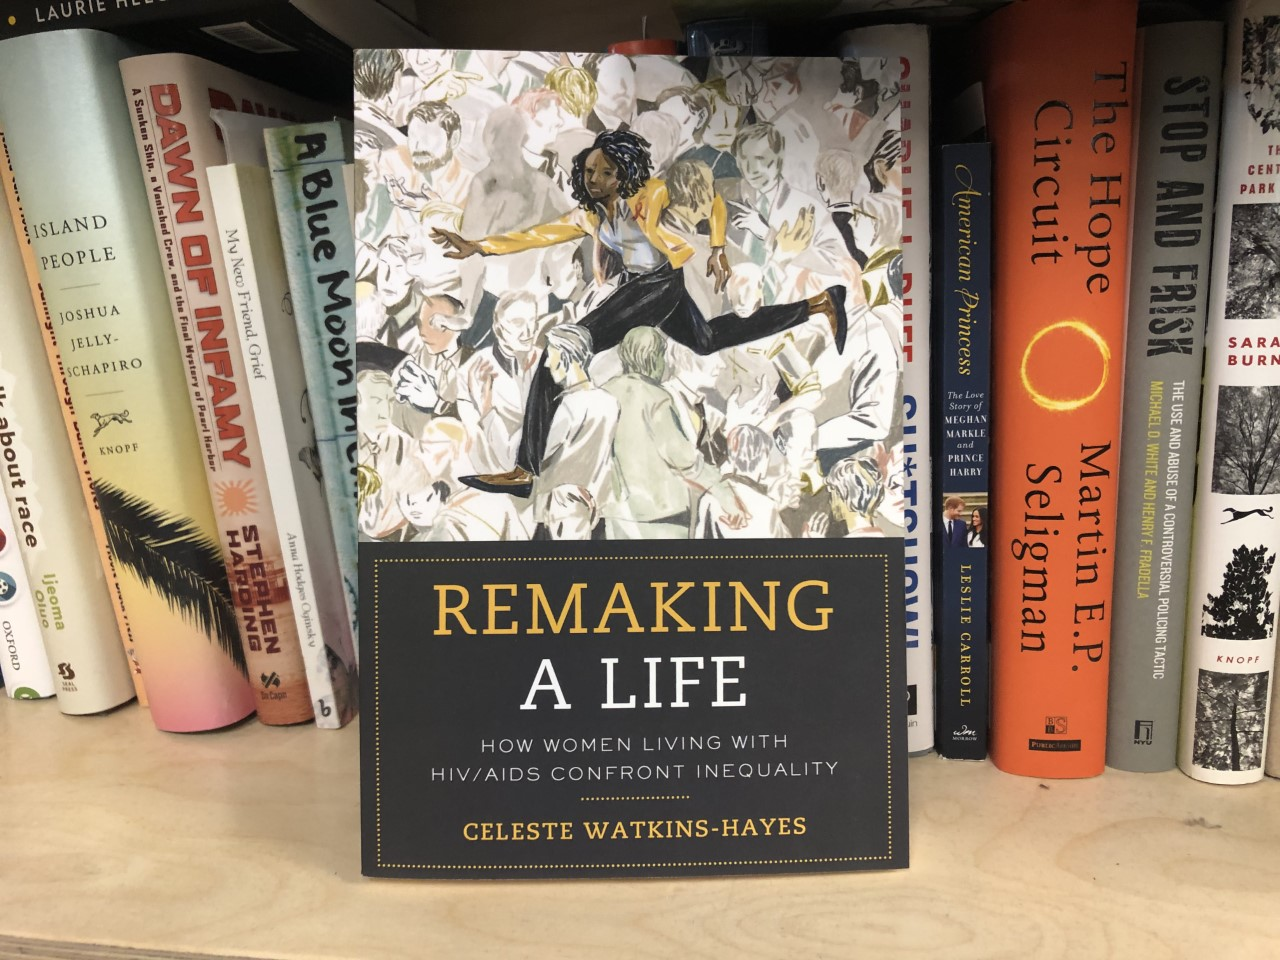 Remaking a Life.'